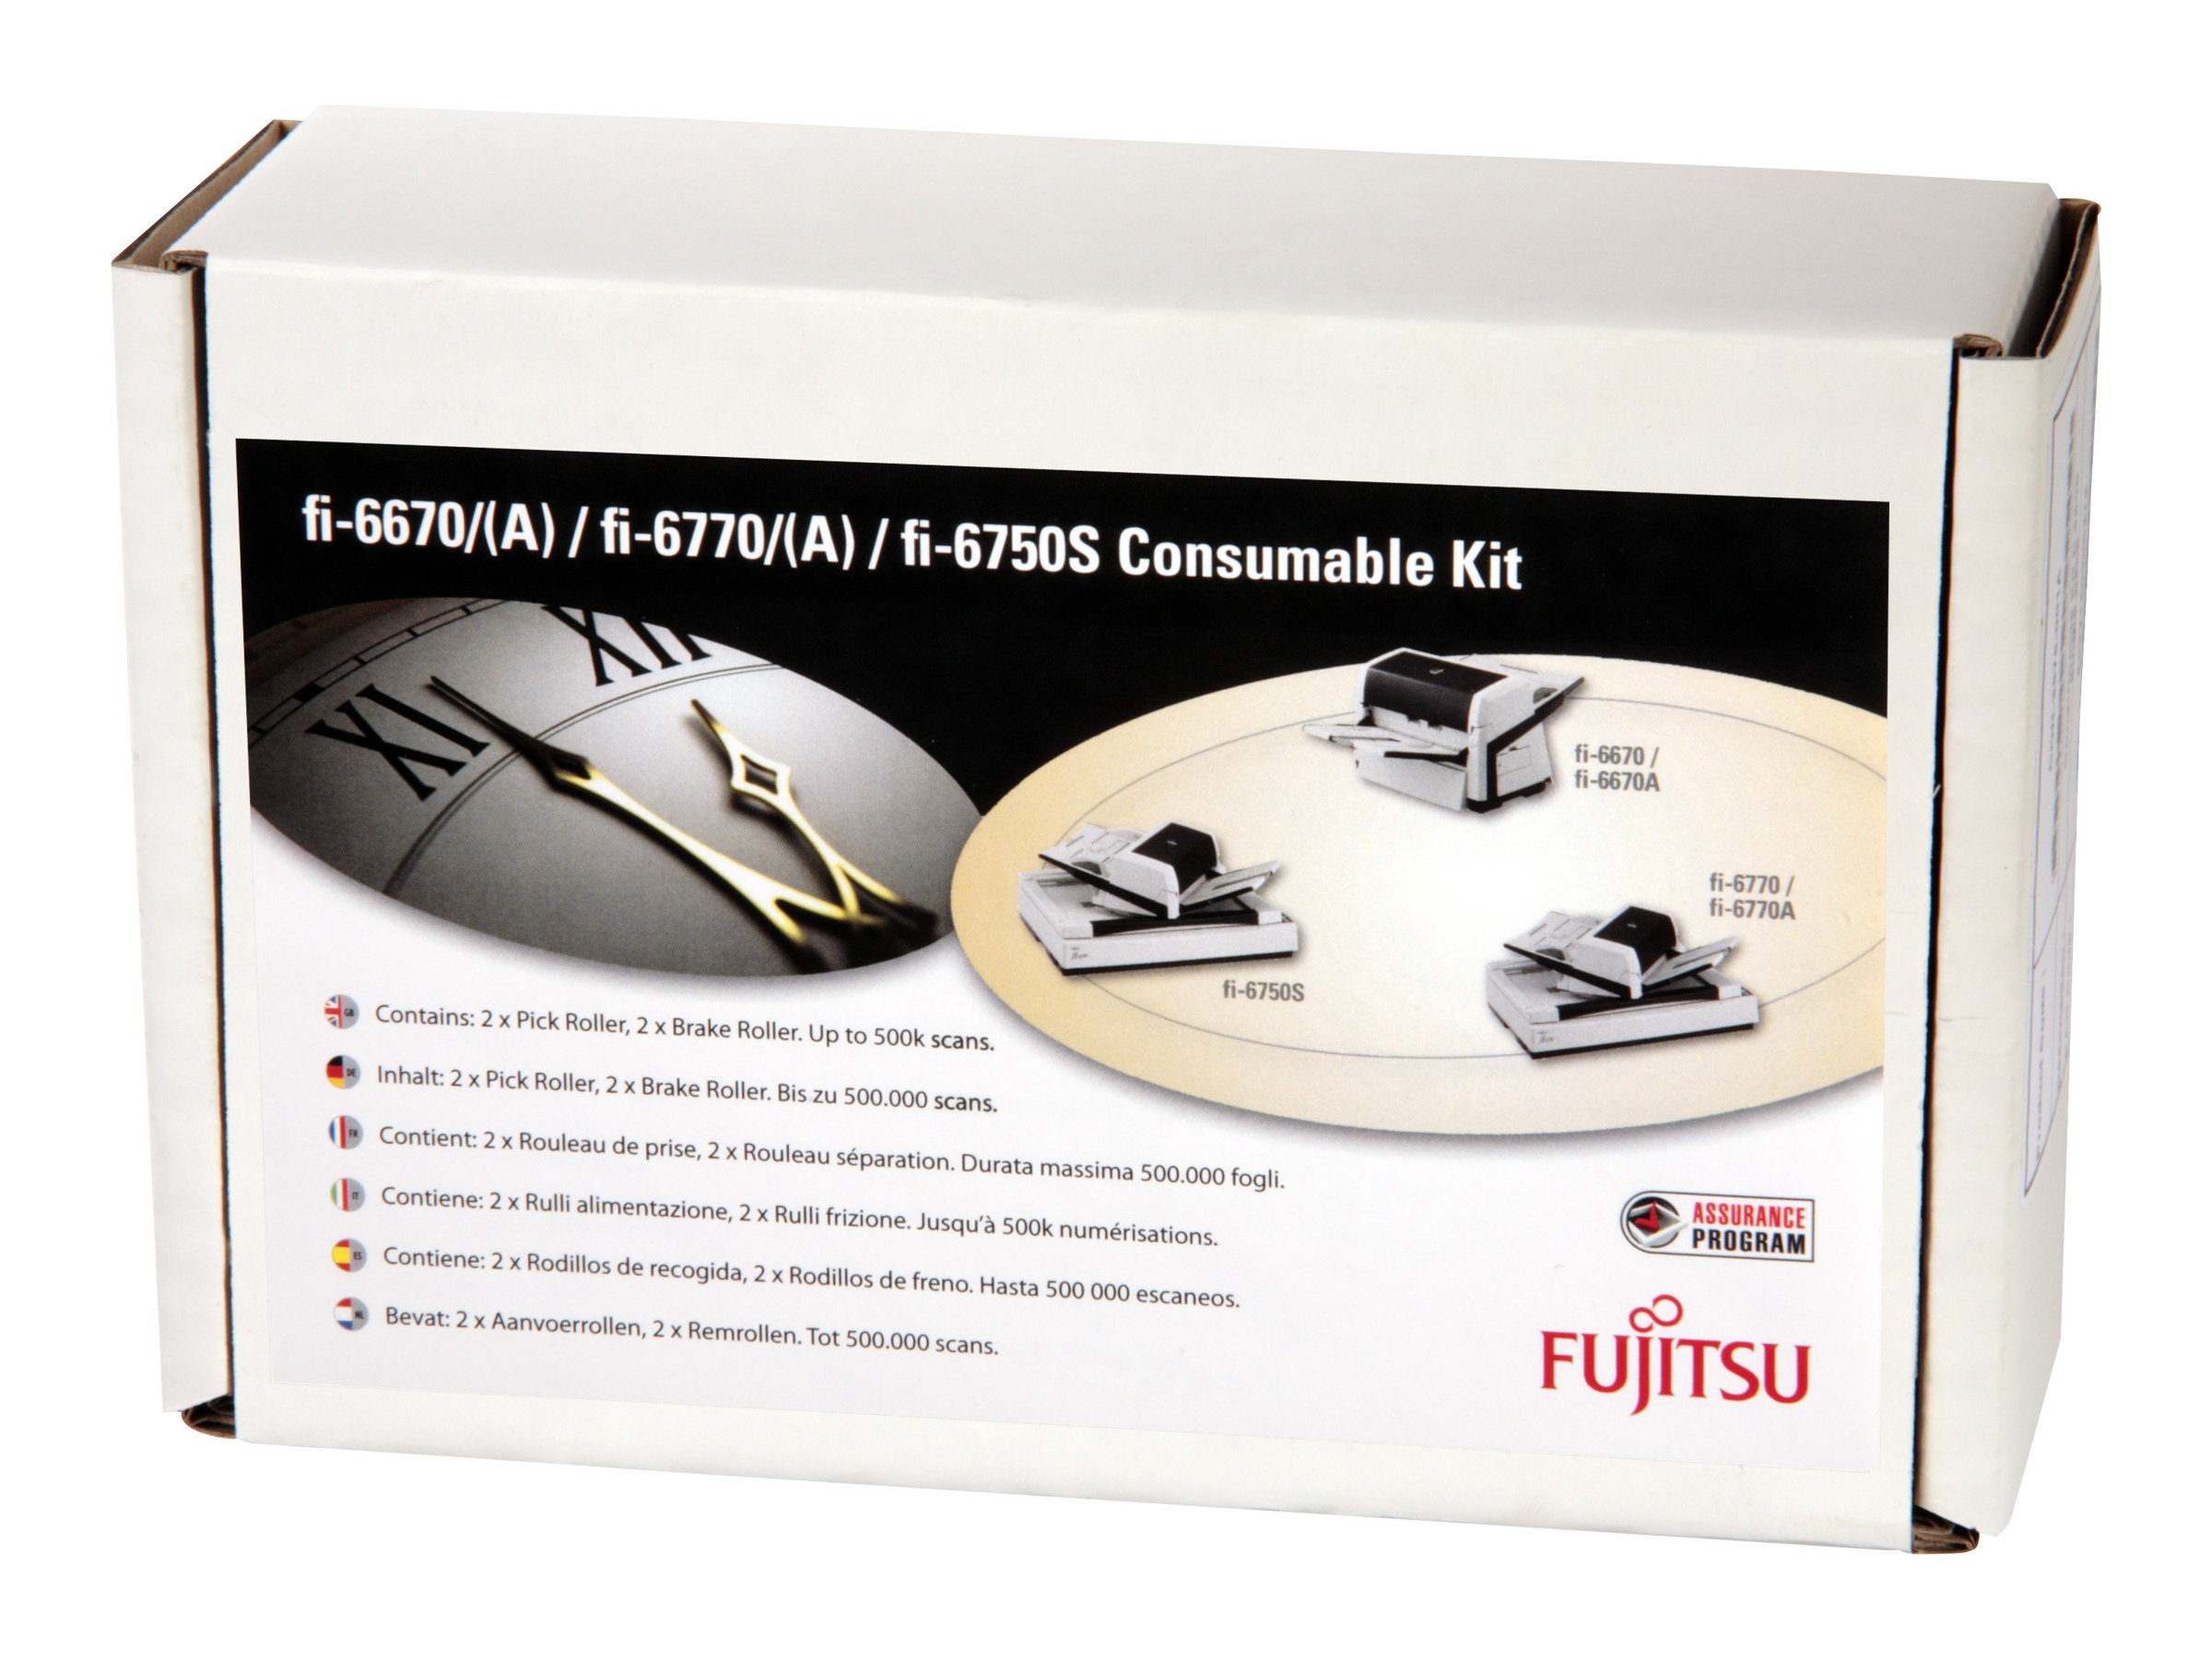 Fujitsu Consumable Kit - Scanner - Verbrauchsmaterialienkit - für fi-6670, 6670A, 6750S, 6770, 6770A